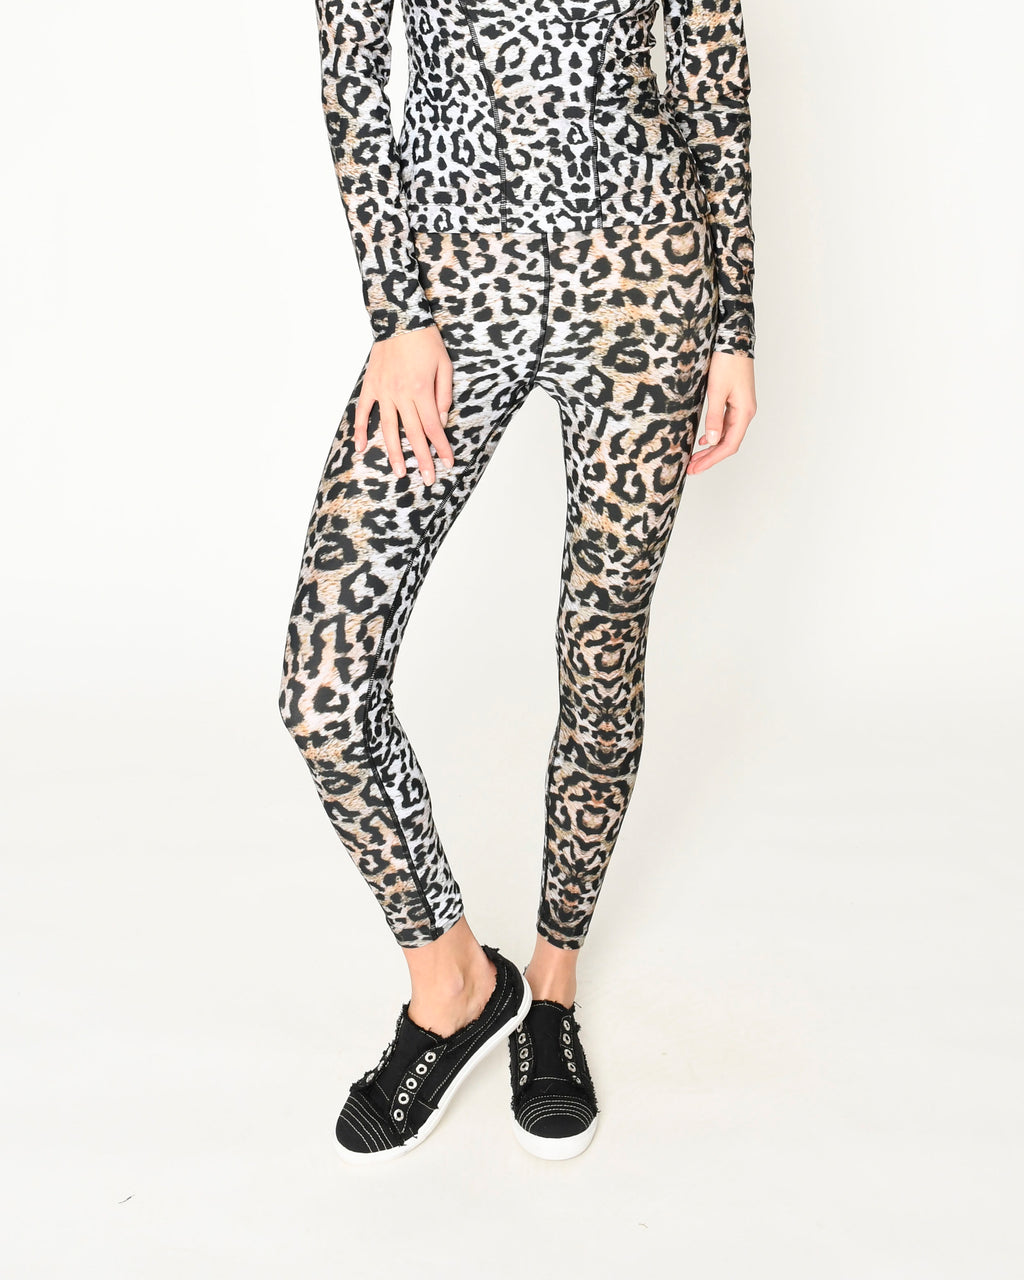 CP19180 - LEOPARD SPORTS LEGGINGS - bottoms - pants - Our leopard leggings are high waisted and crafted from a high performance nylon spandex blend. Designed in one of our signature prints, this piece is perfect for a workout or the girl on the go. Add 1 line break Stylist tip: Pair with the matching workout top to be the most stylish in any gym.